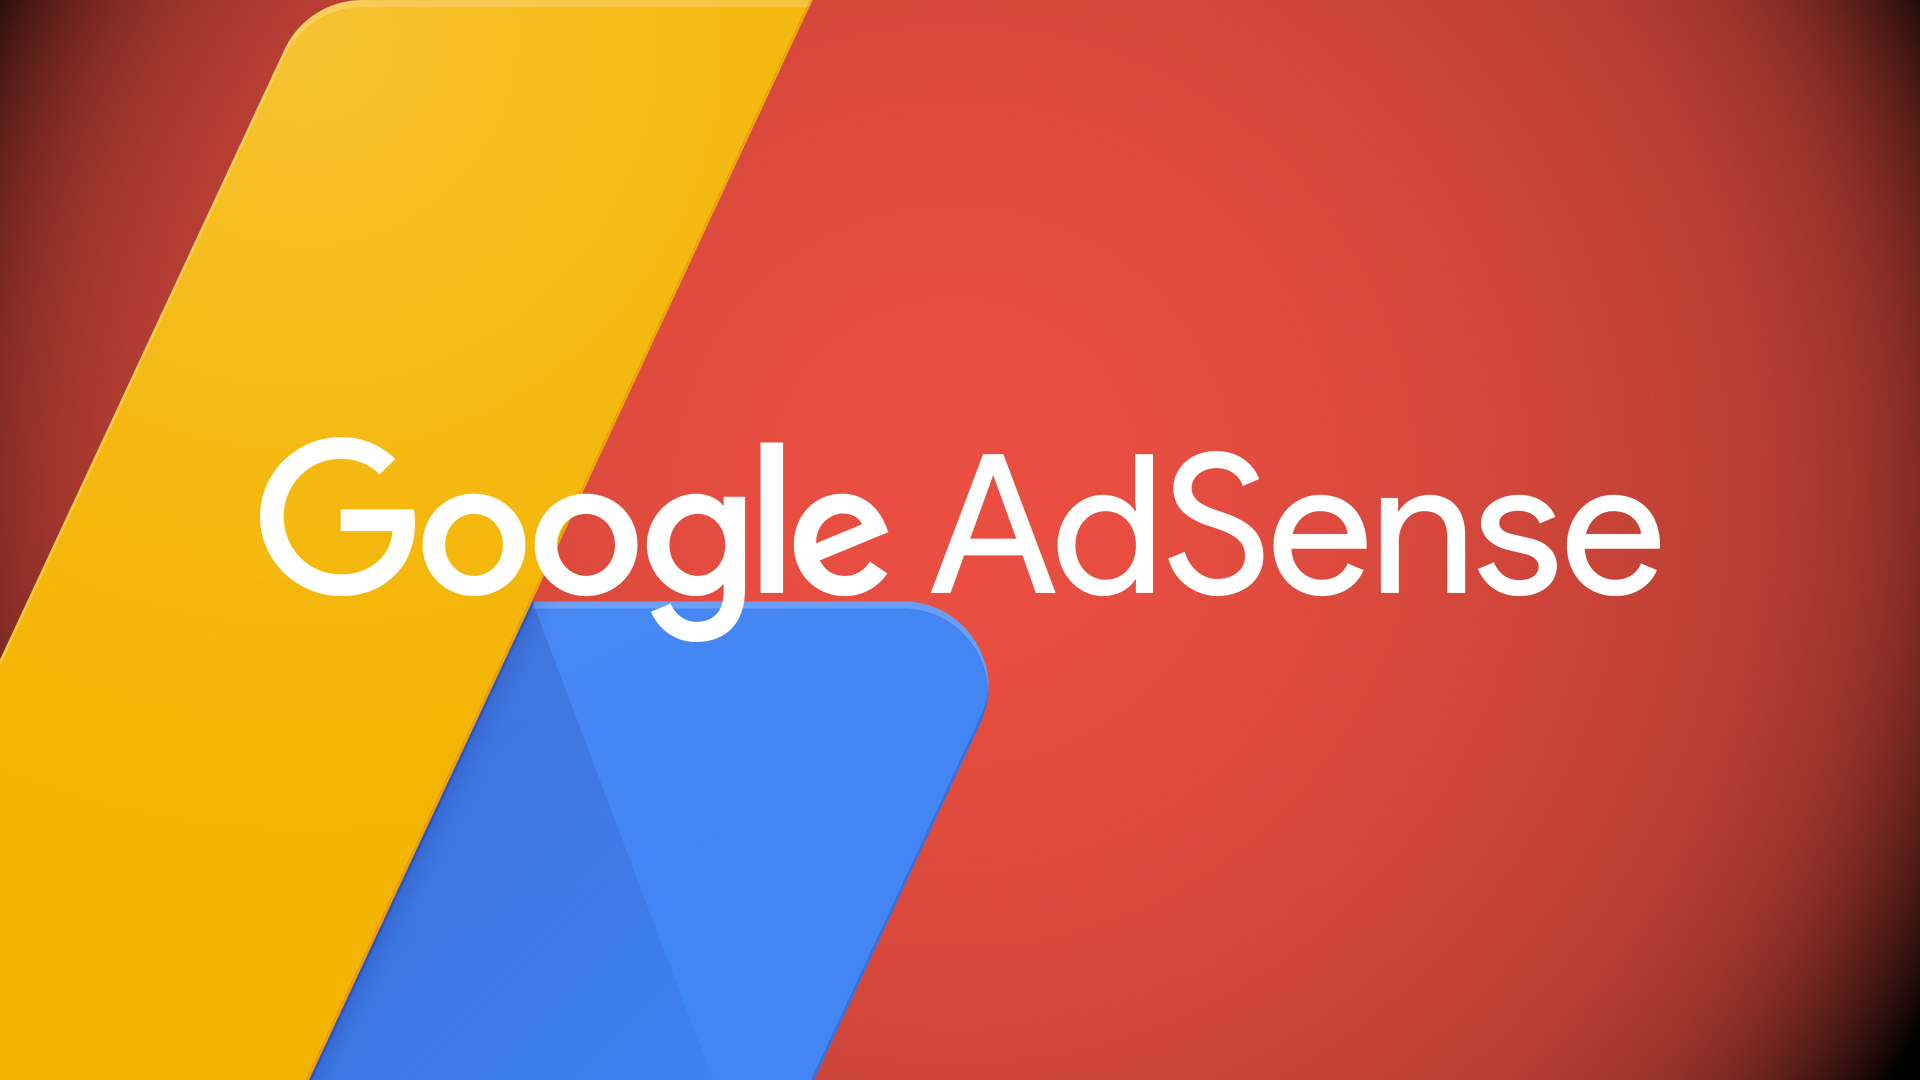 How To Specify The Size of AdSense Responsive Units